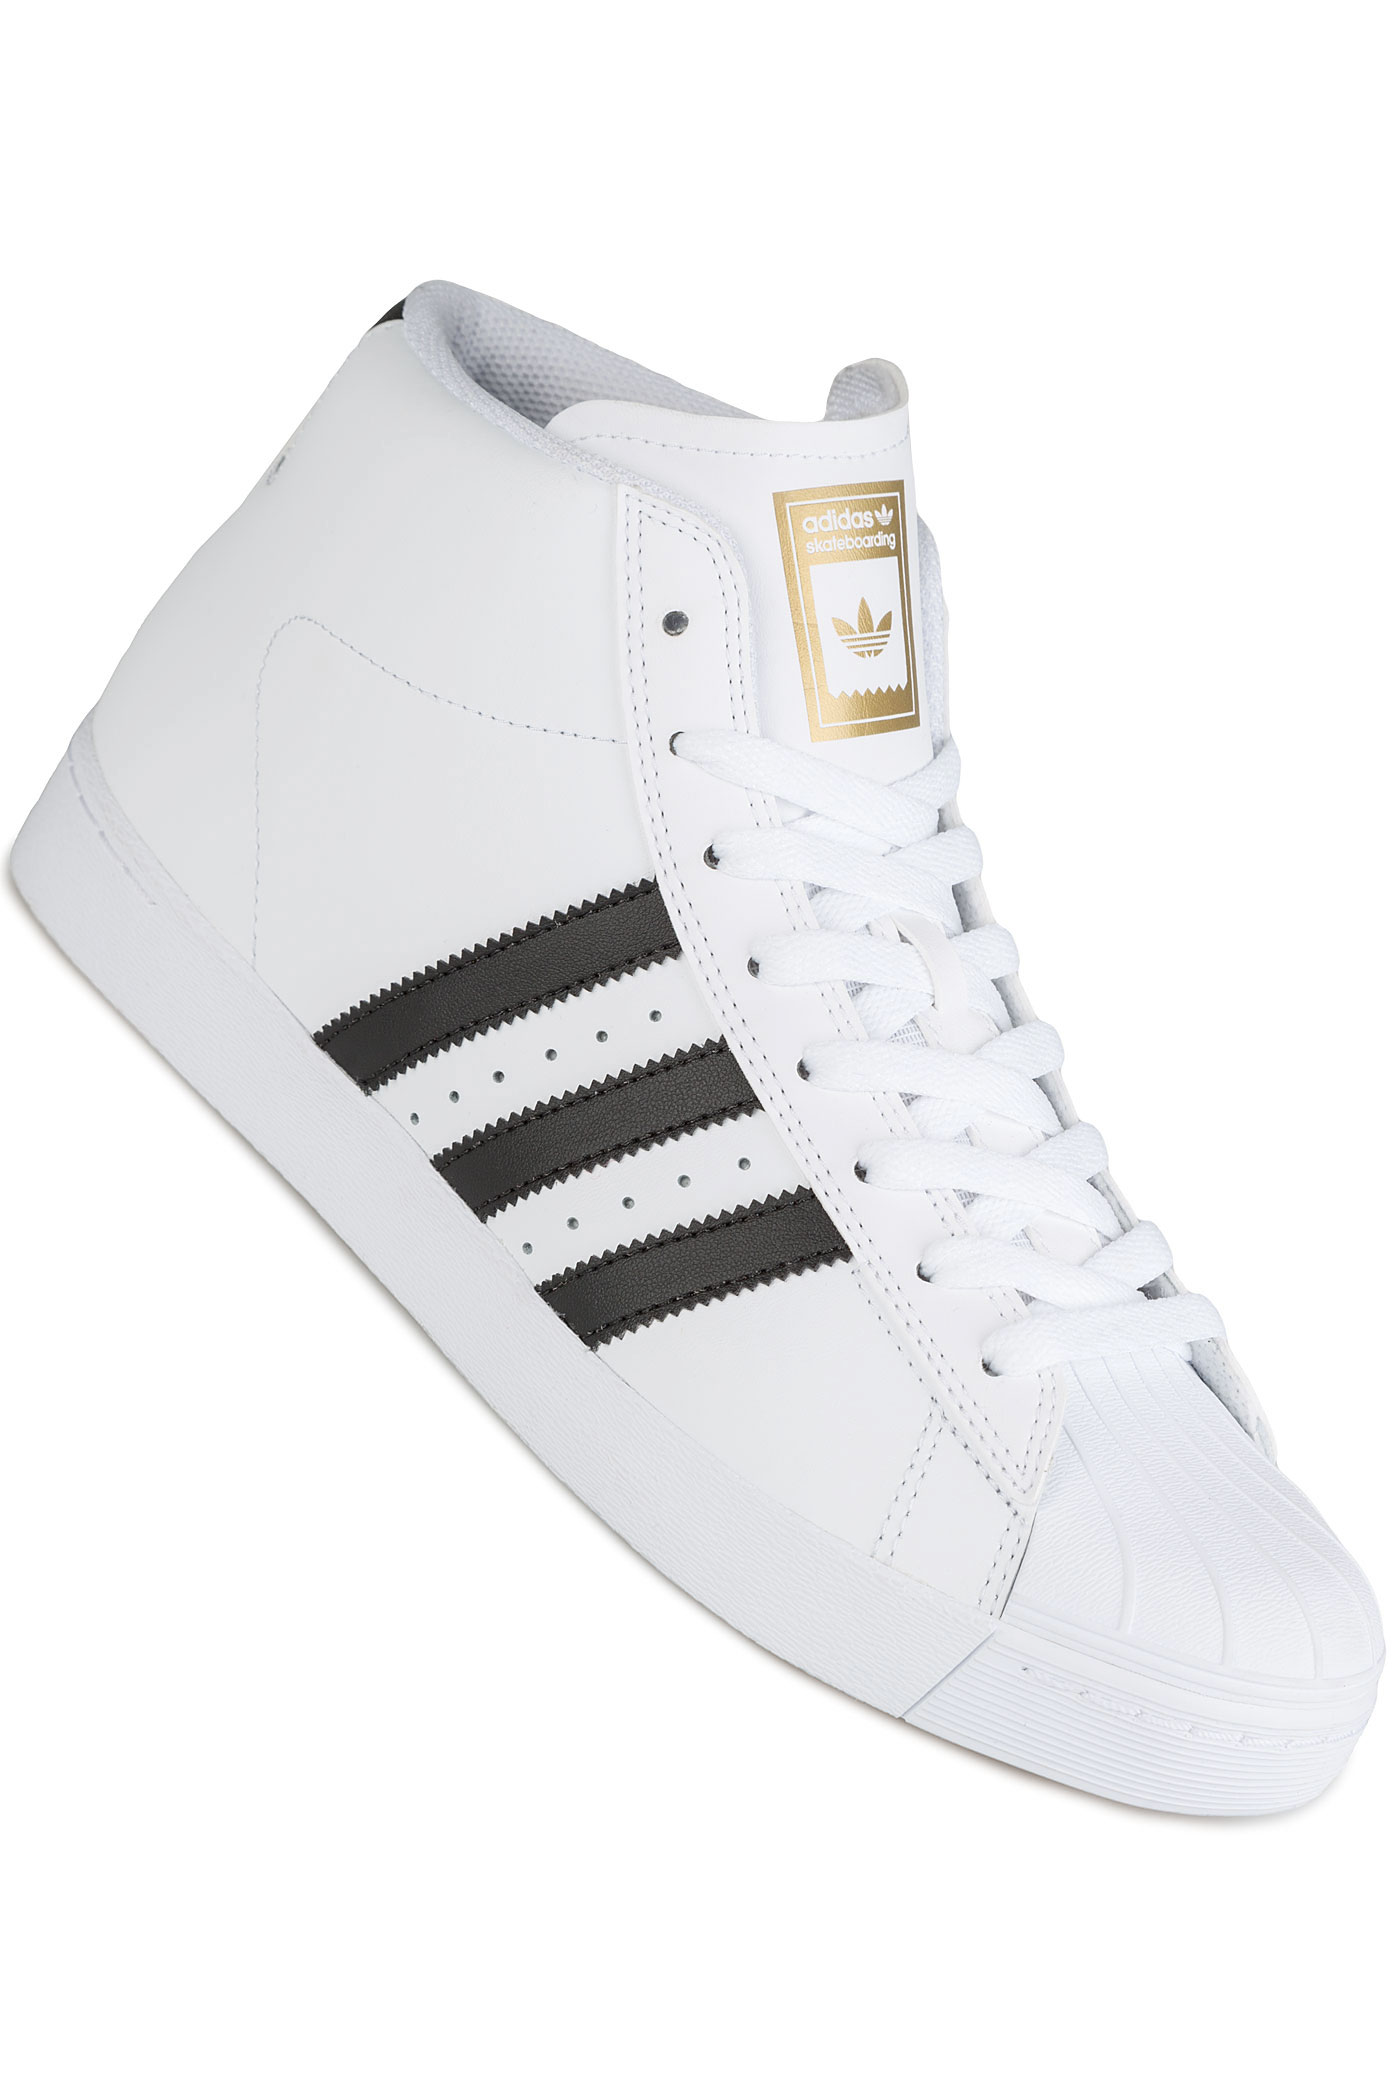 low priced a0dfb 507c3 adidas Skateboarding Pro Model Vulc ADV Chaussure (white black gold)